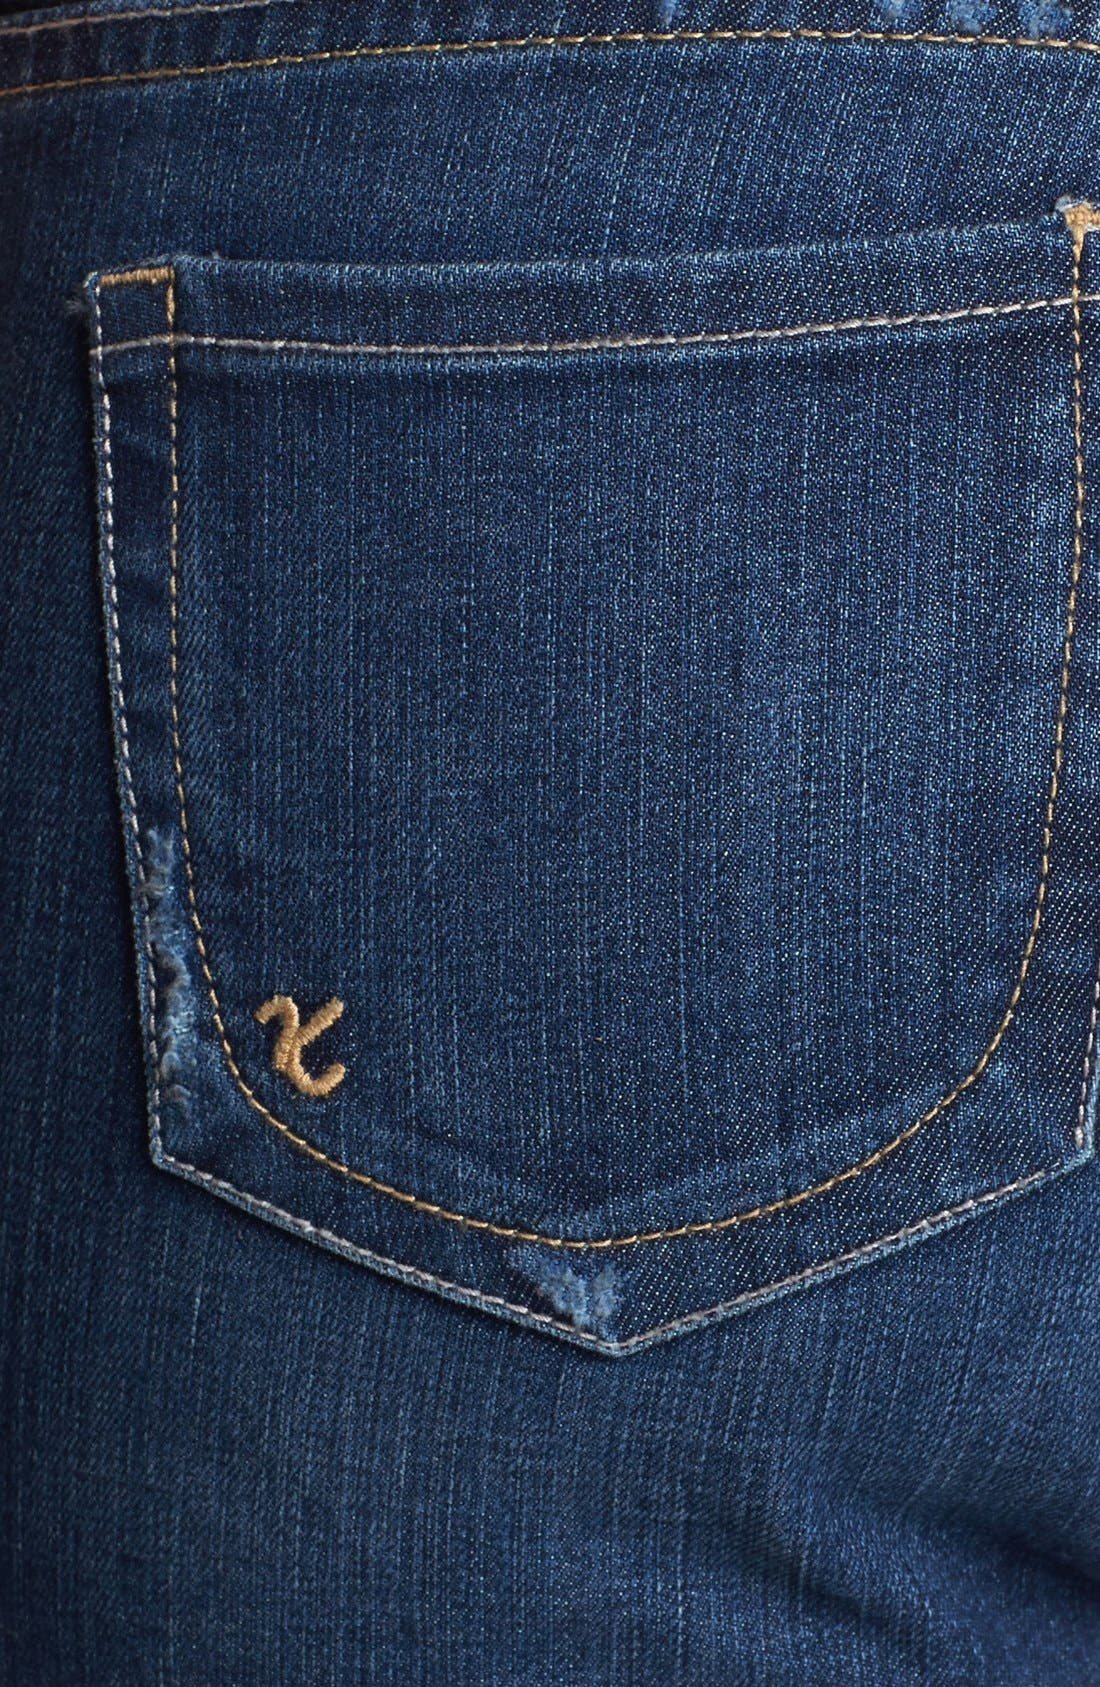 KUT FROM THE KLOTH, 'Mia' Skinny Jeans, Alternate thumbnail 6, color, 433